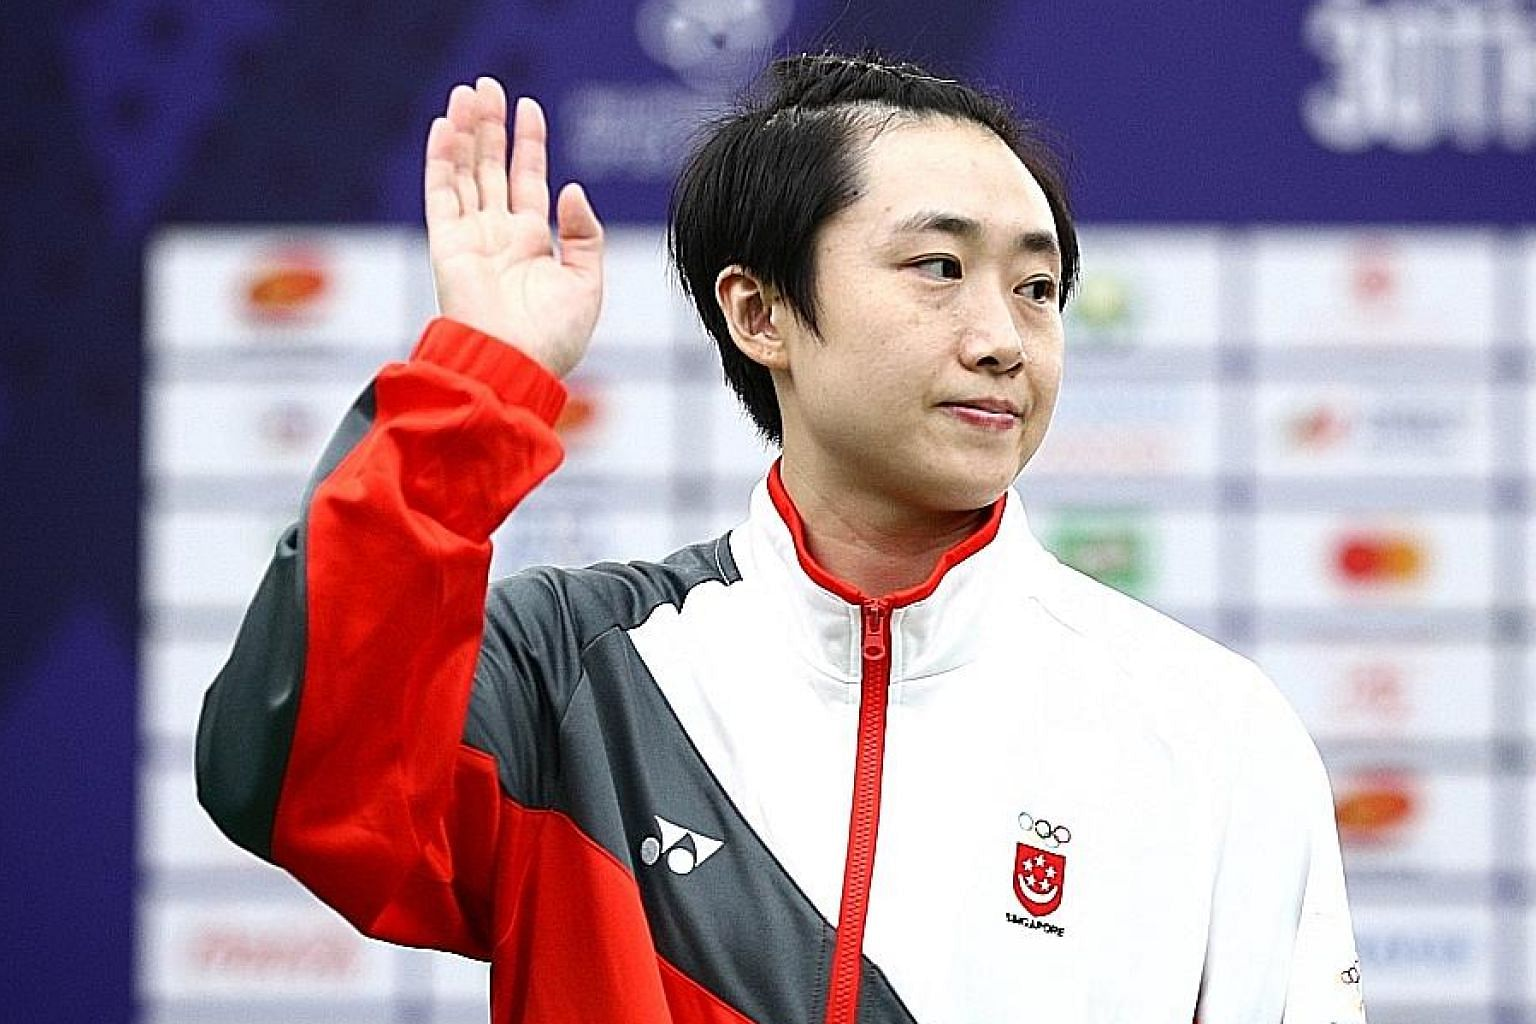 Singapore paddler Feng Tianwei during the victory ceremony at the SEA Games last year, when she won women's singles silver.